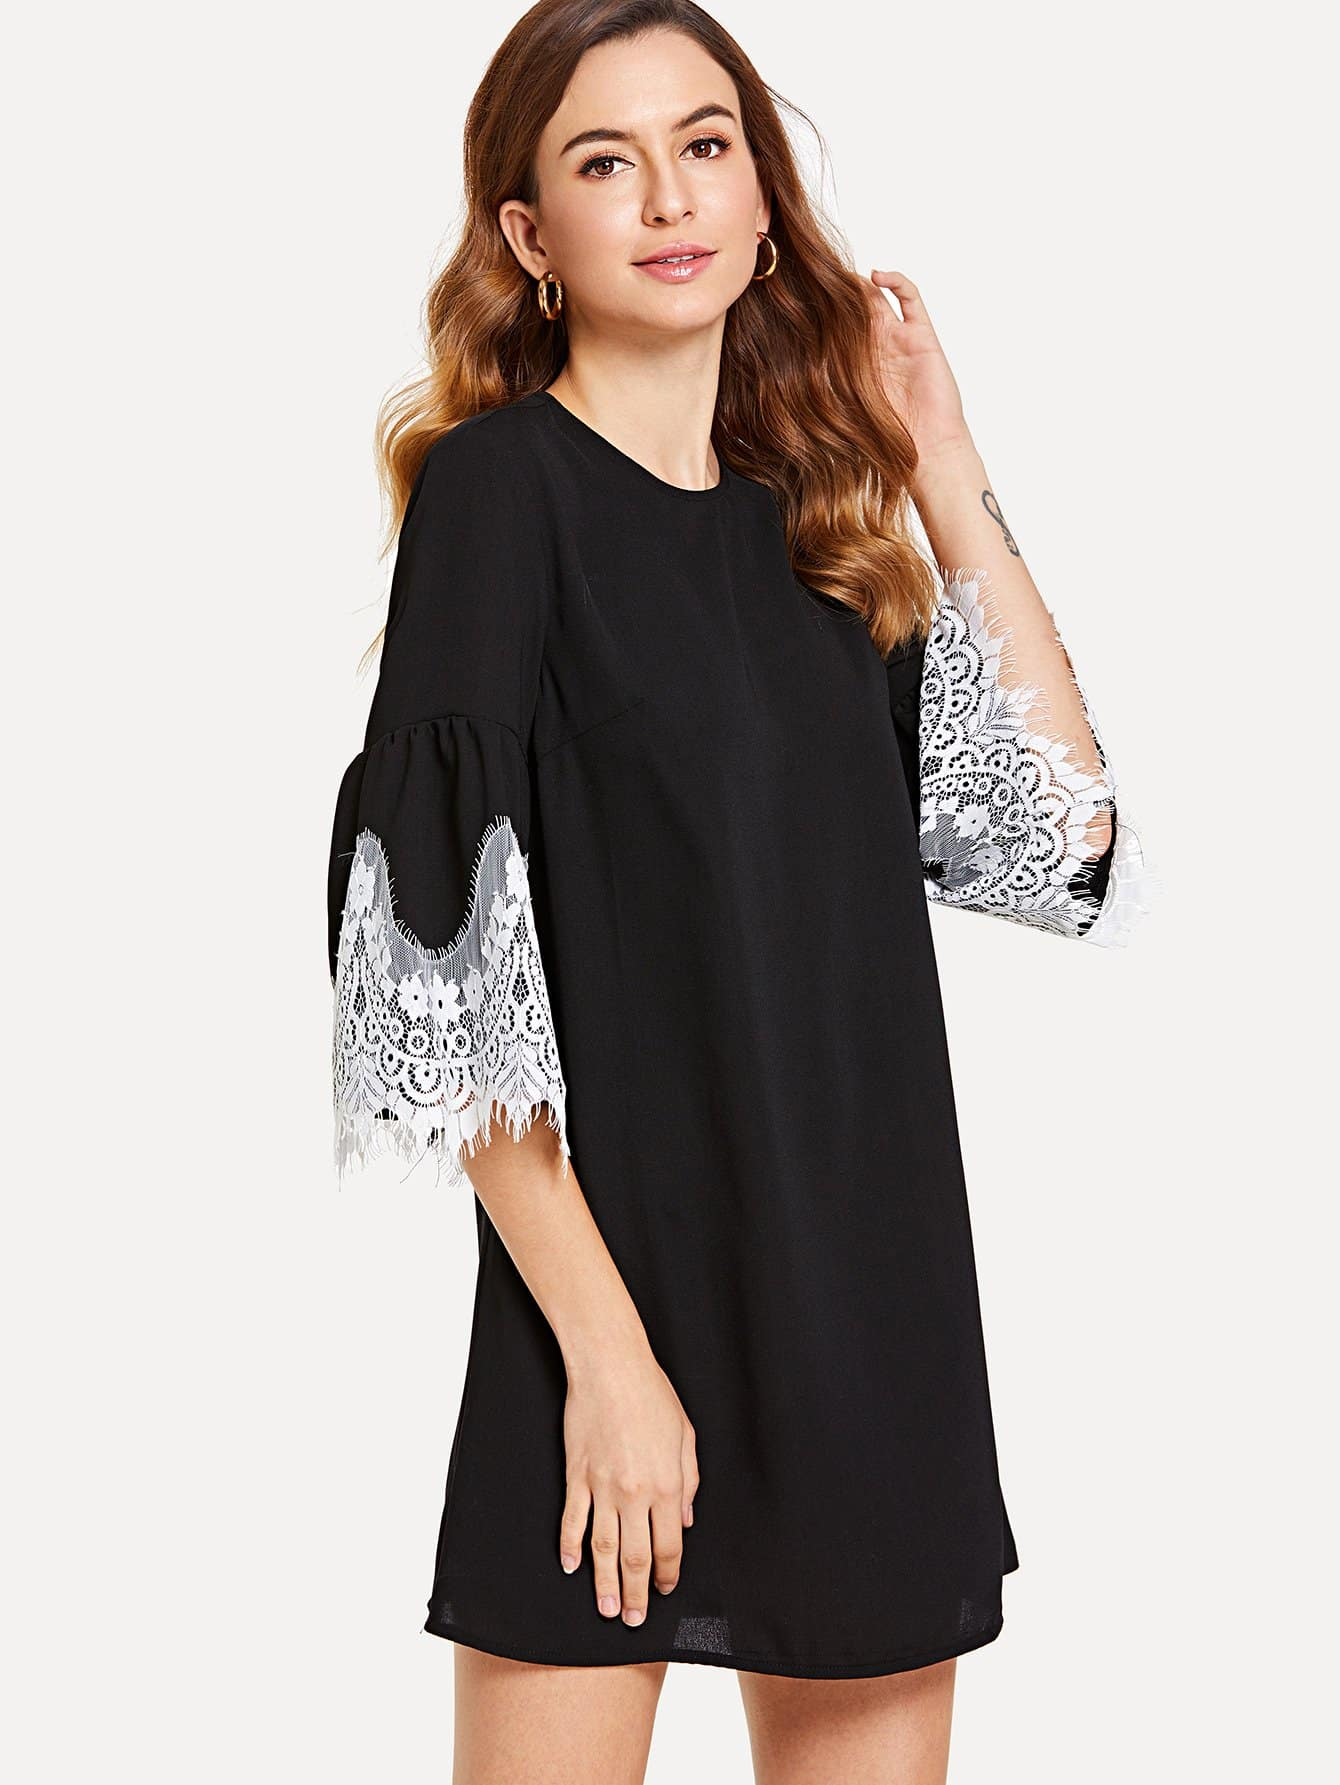 Contrast Lace Trim Tunic Dress embroidered trim tunic dress